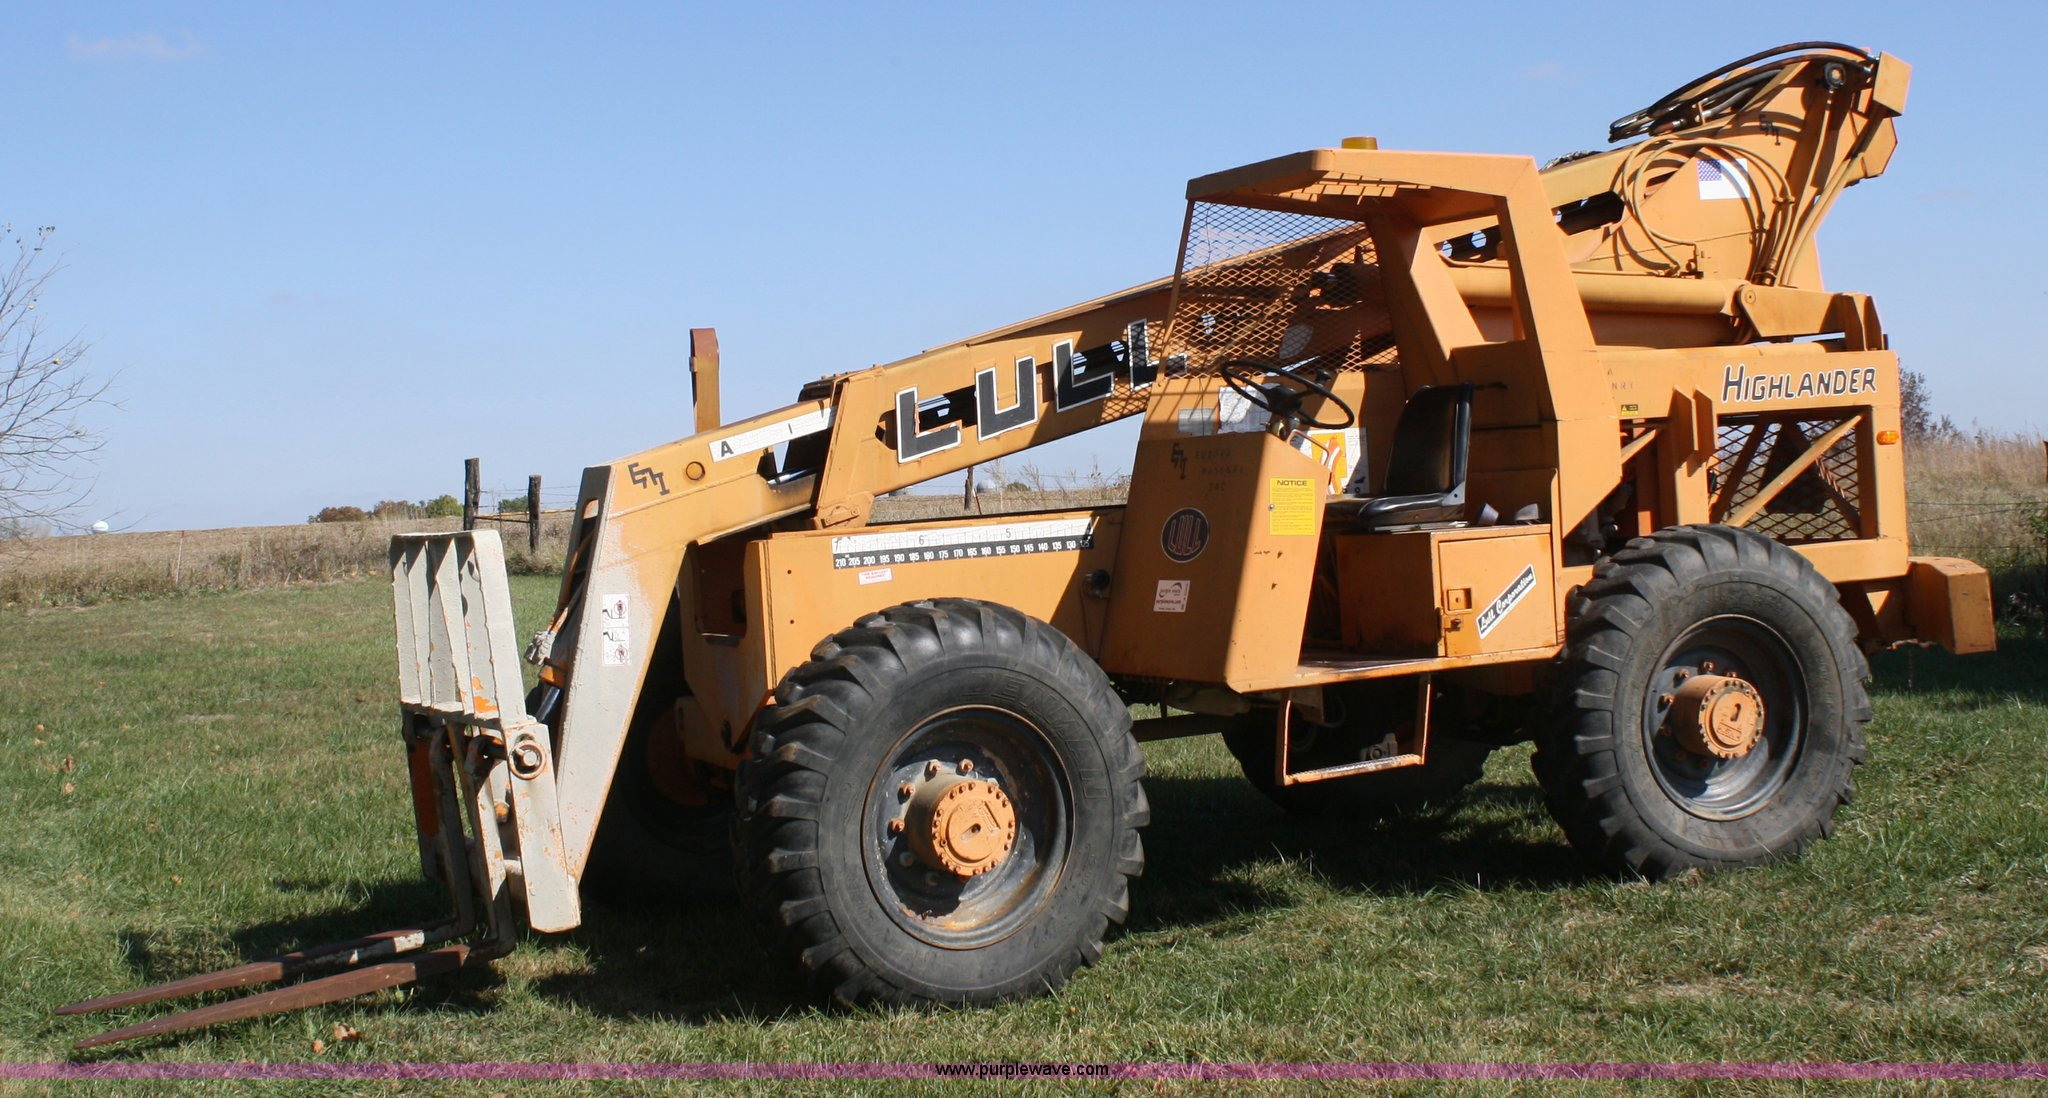 A6503 image for item A6503 1984 Lull Highlander 844 telehandler